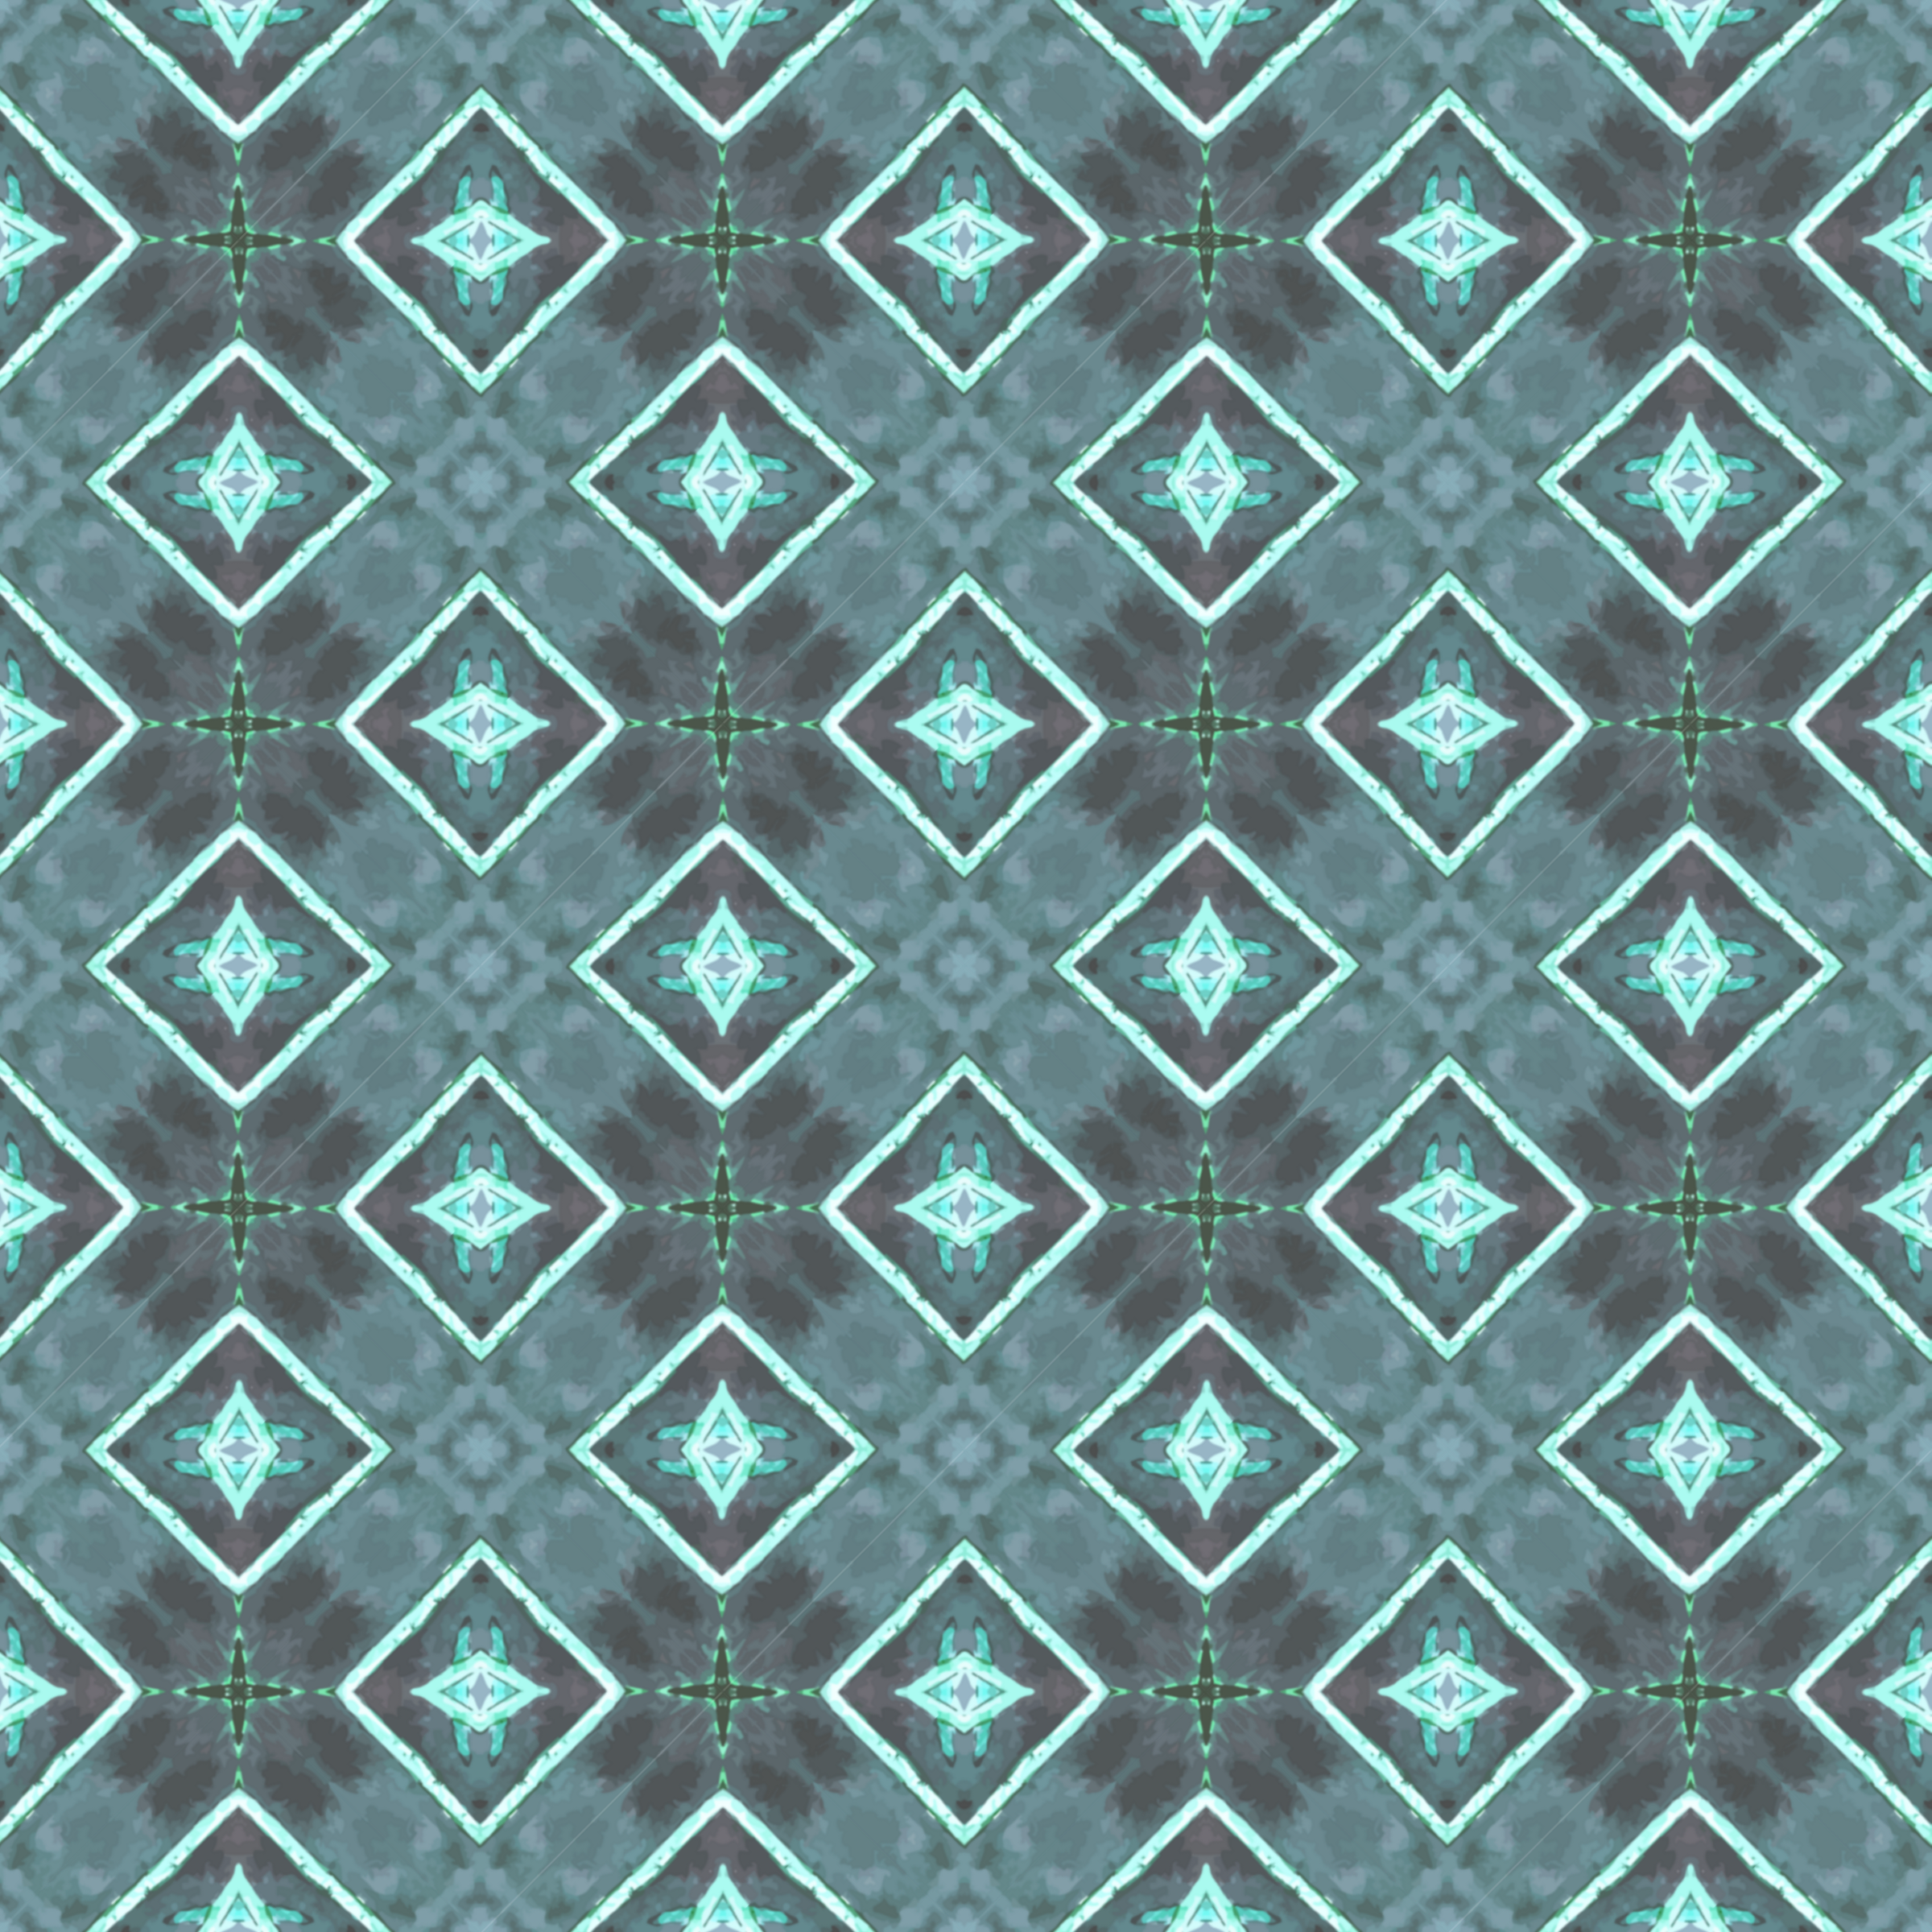 Background pattern 184 (colour 2) by Firkin